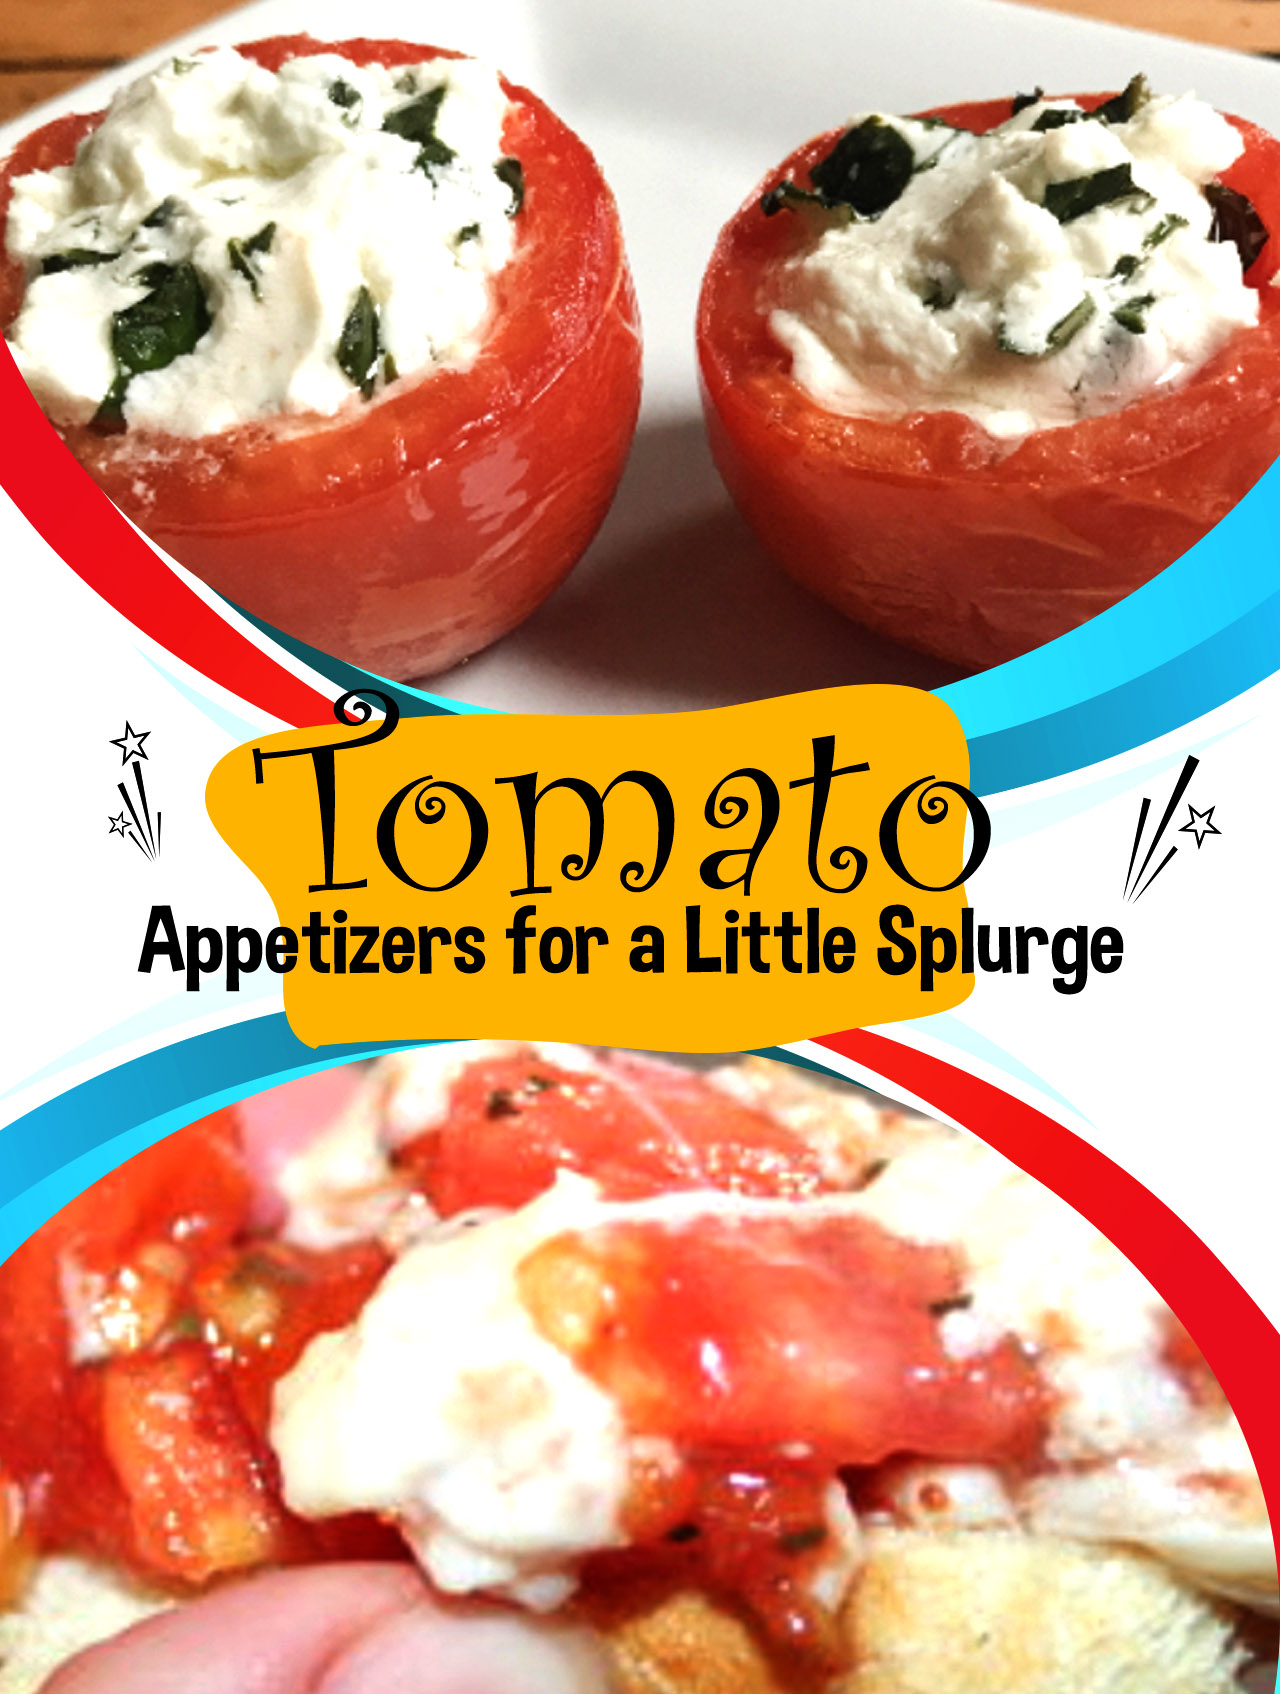 Tomato Appetizers for a Little Splurge